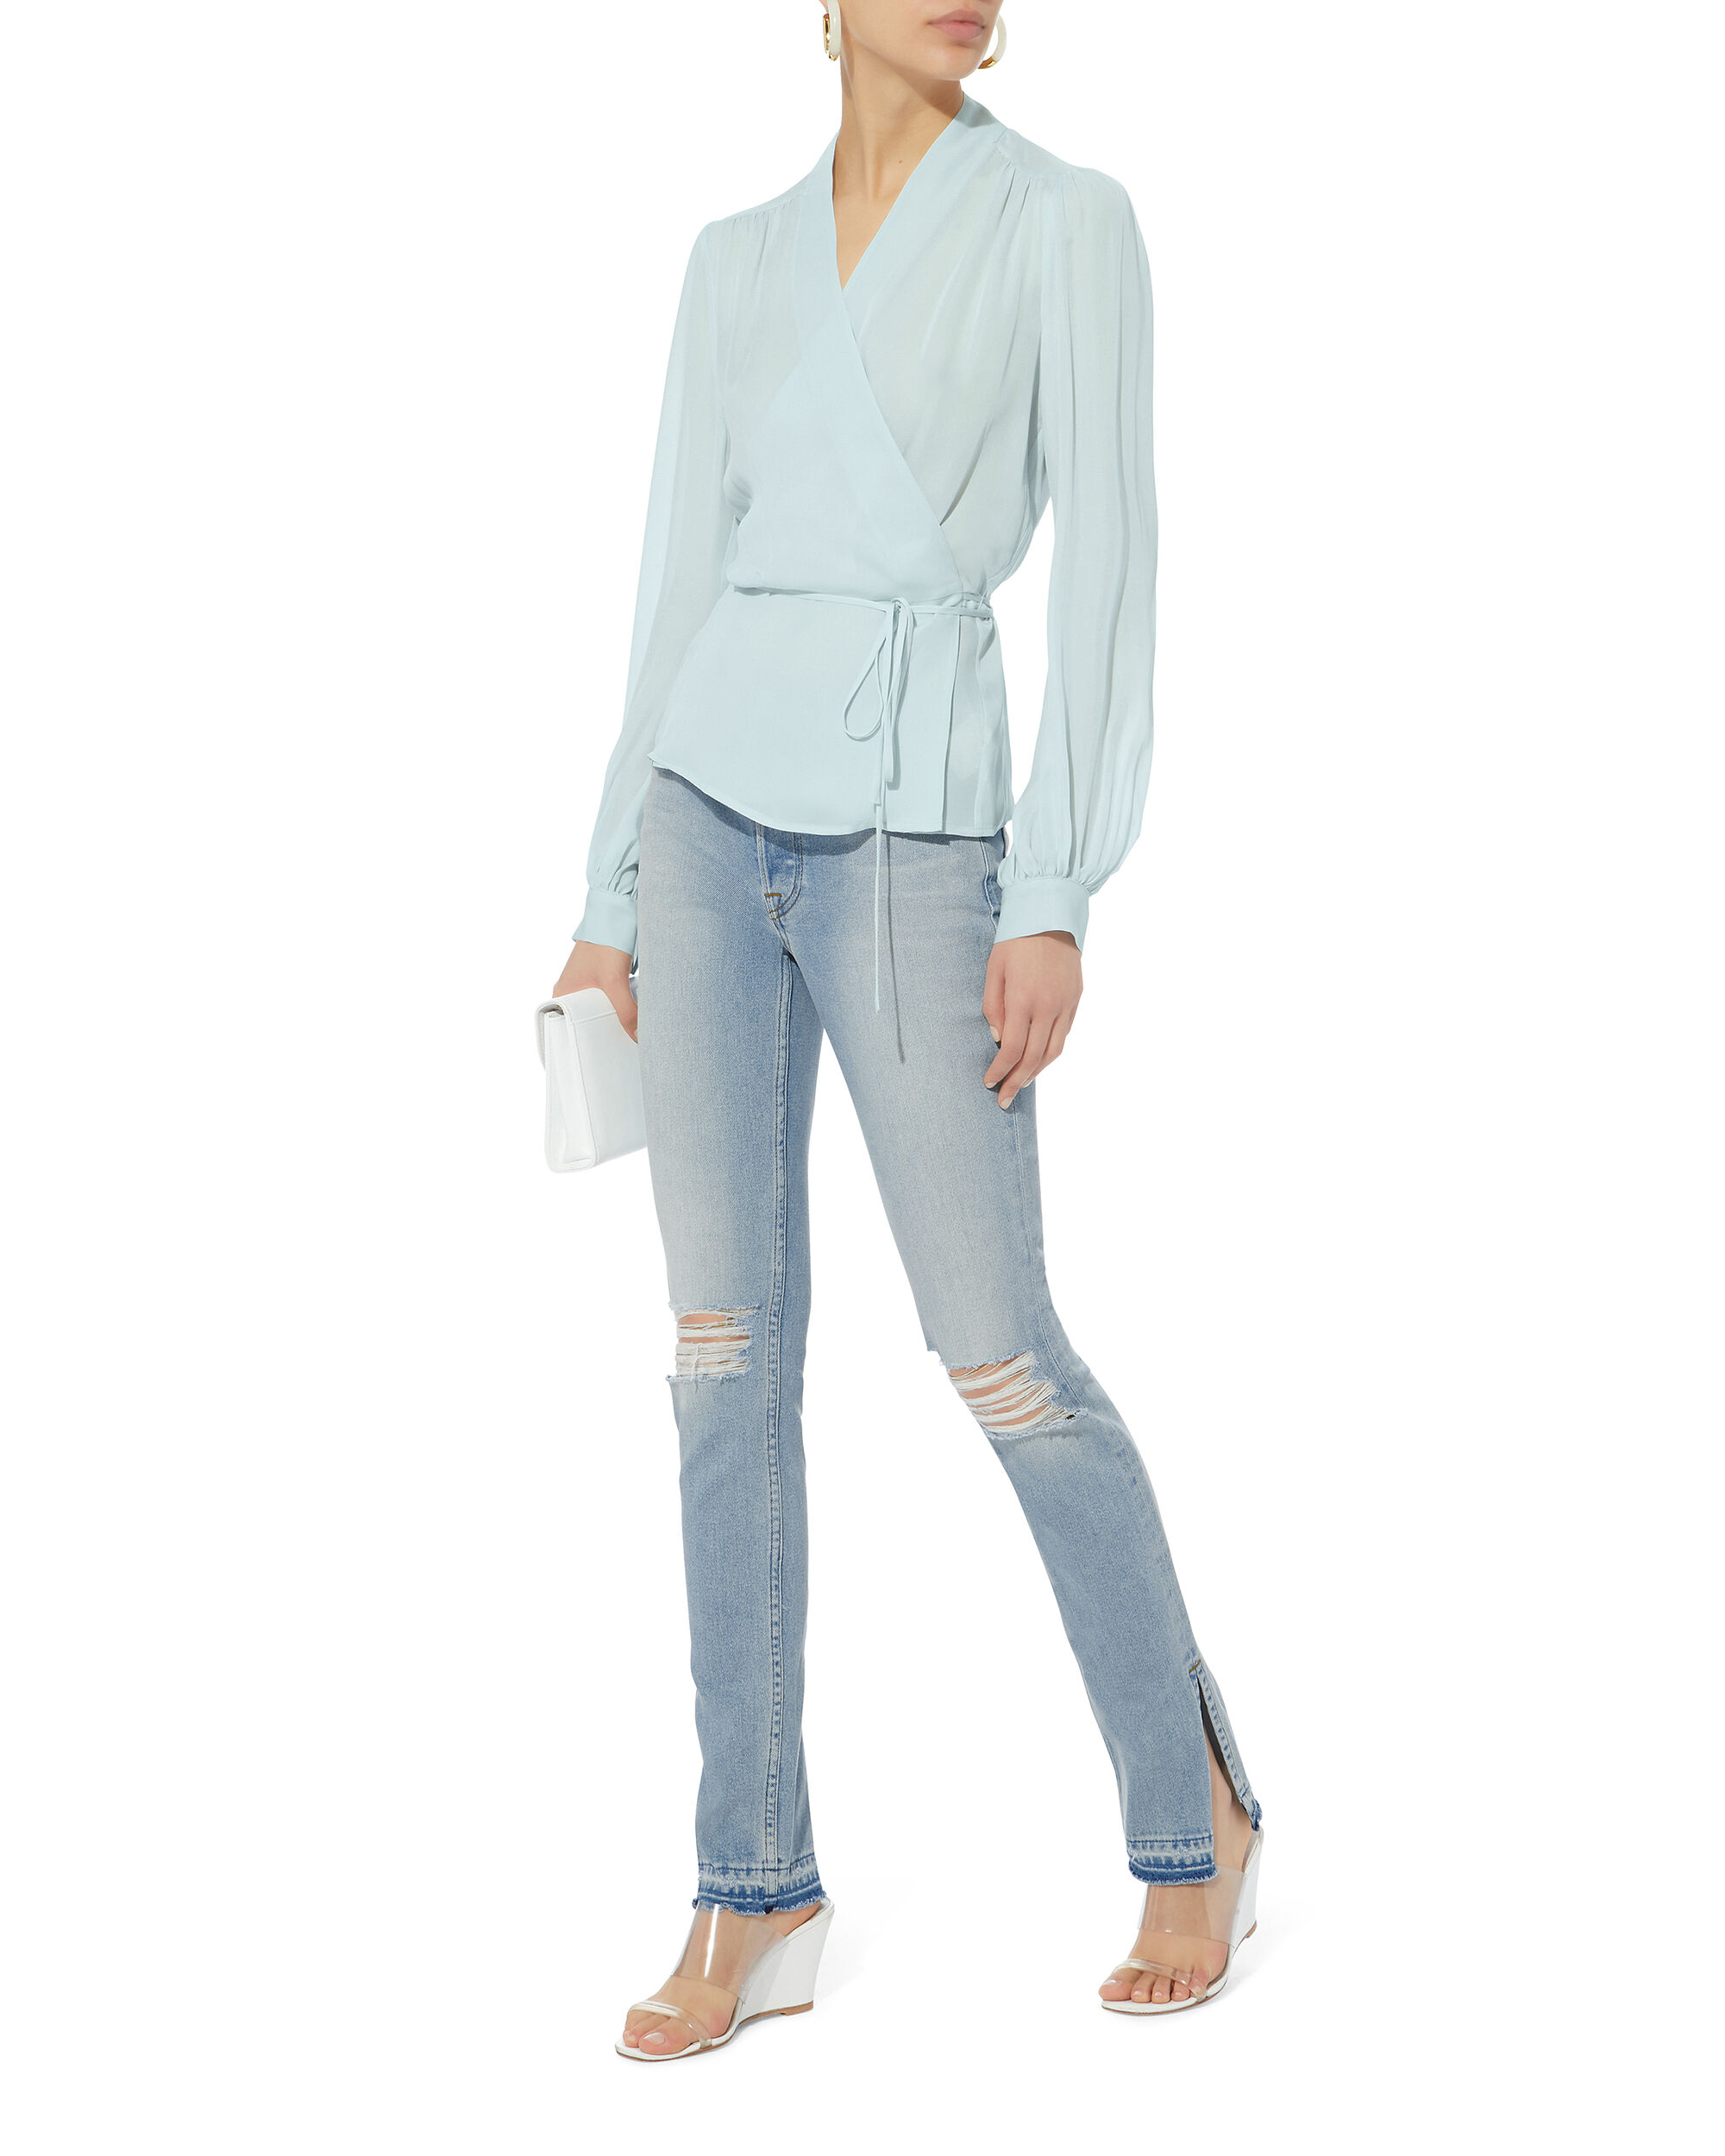 Cara Blue Wrap Blouse, BLUE-LT, hi-res